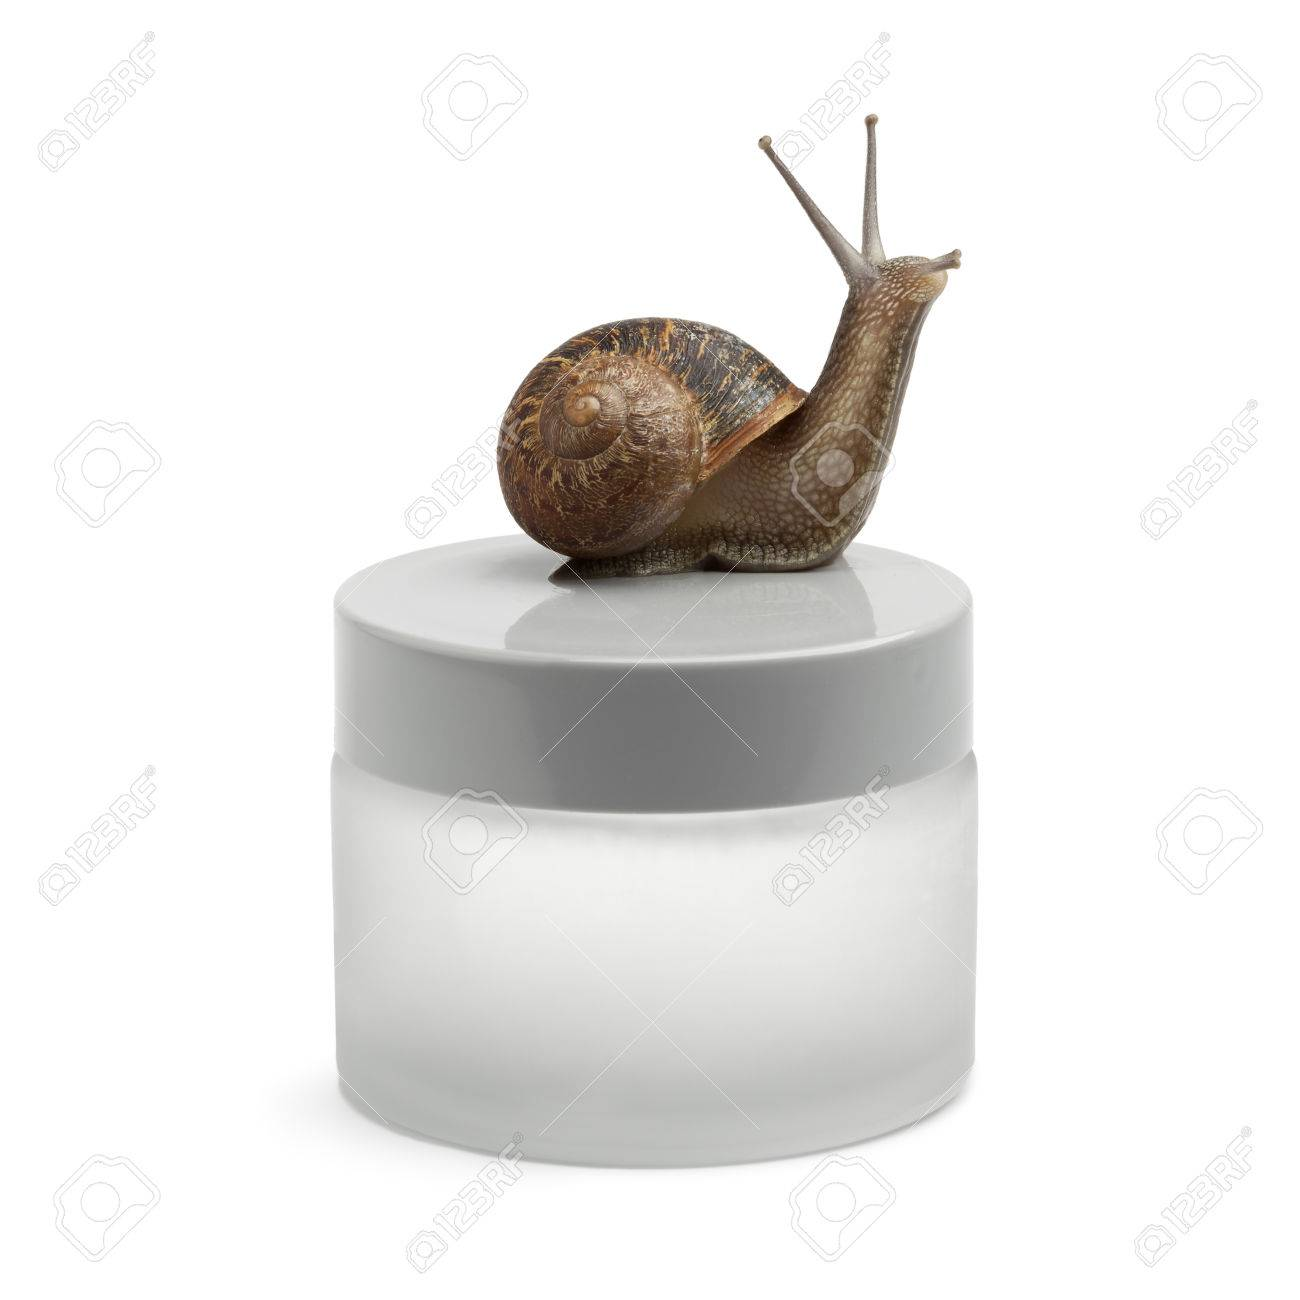 Snail-slime Face Cream With The Snail On The Pot Stock Photo ...